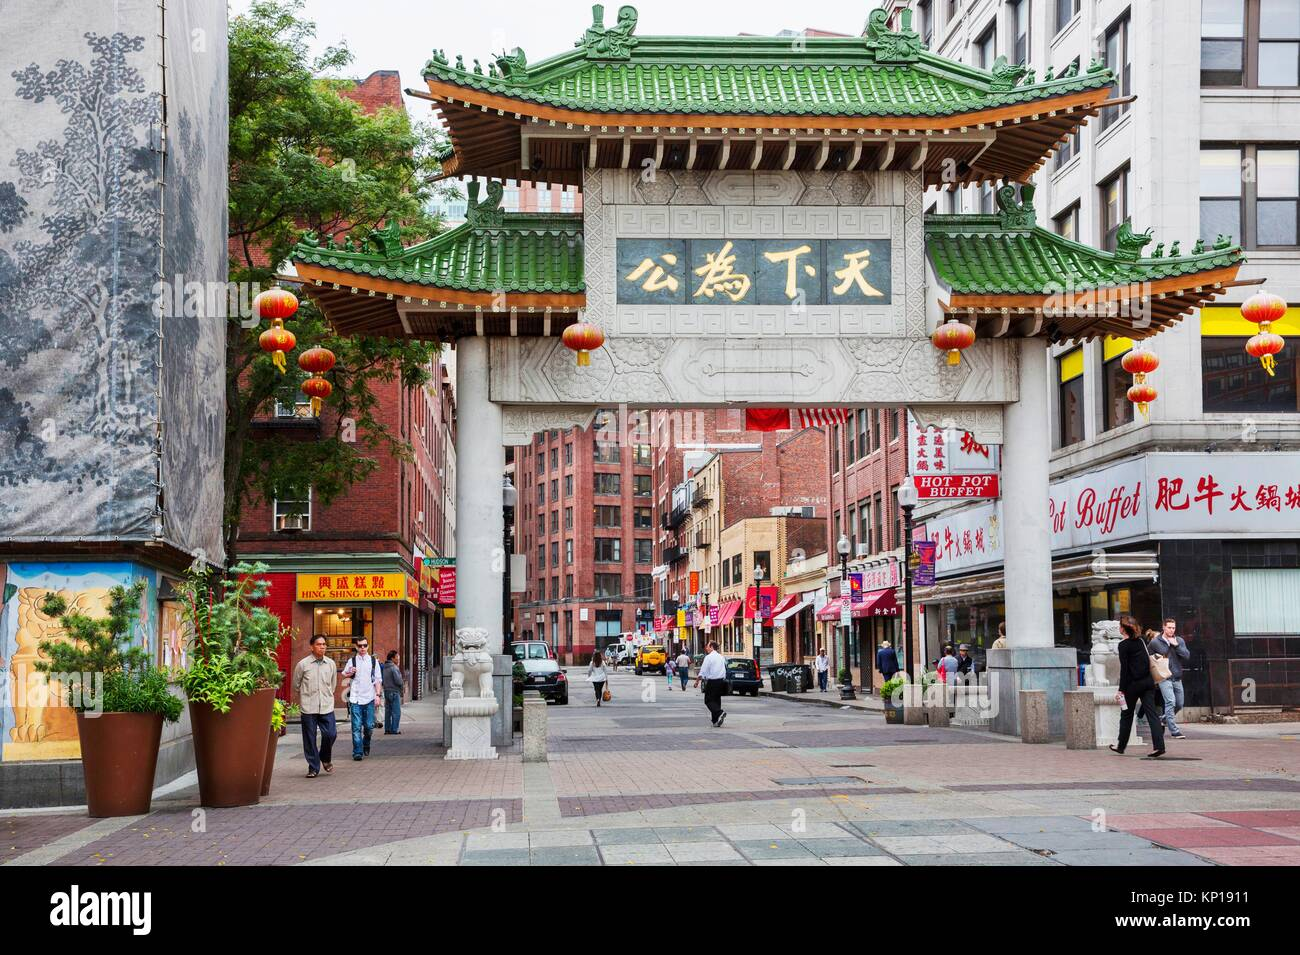 Chinatown Boston High Resolution Stock Photography And Images Alamy